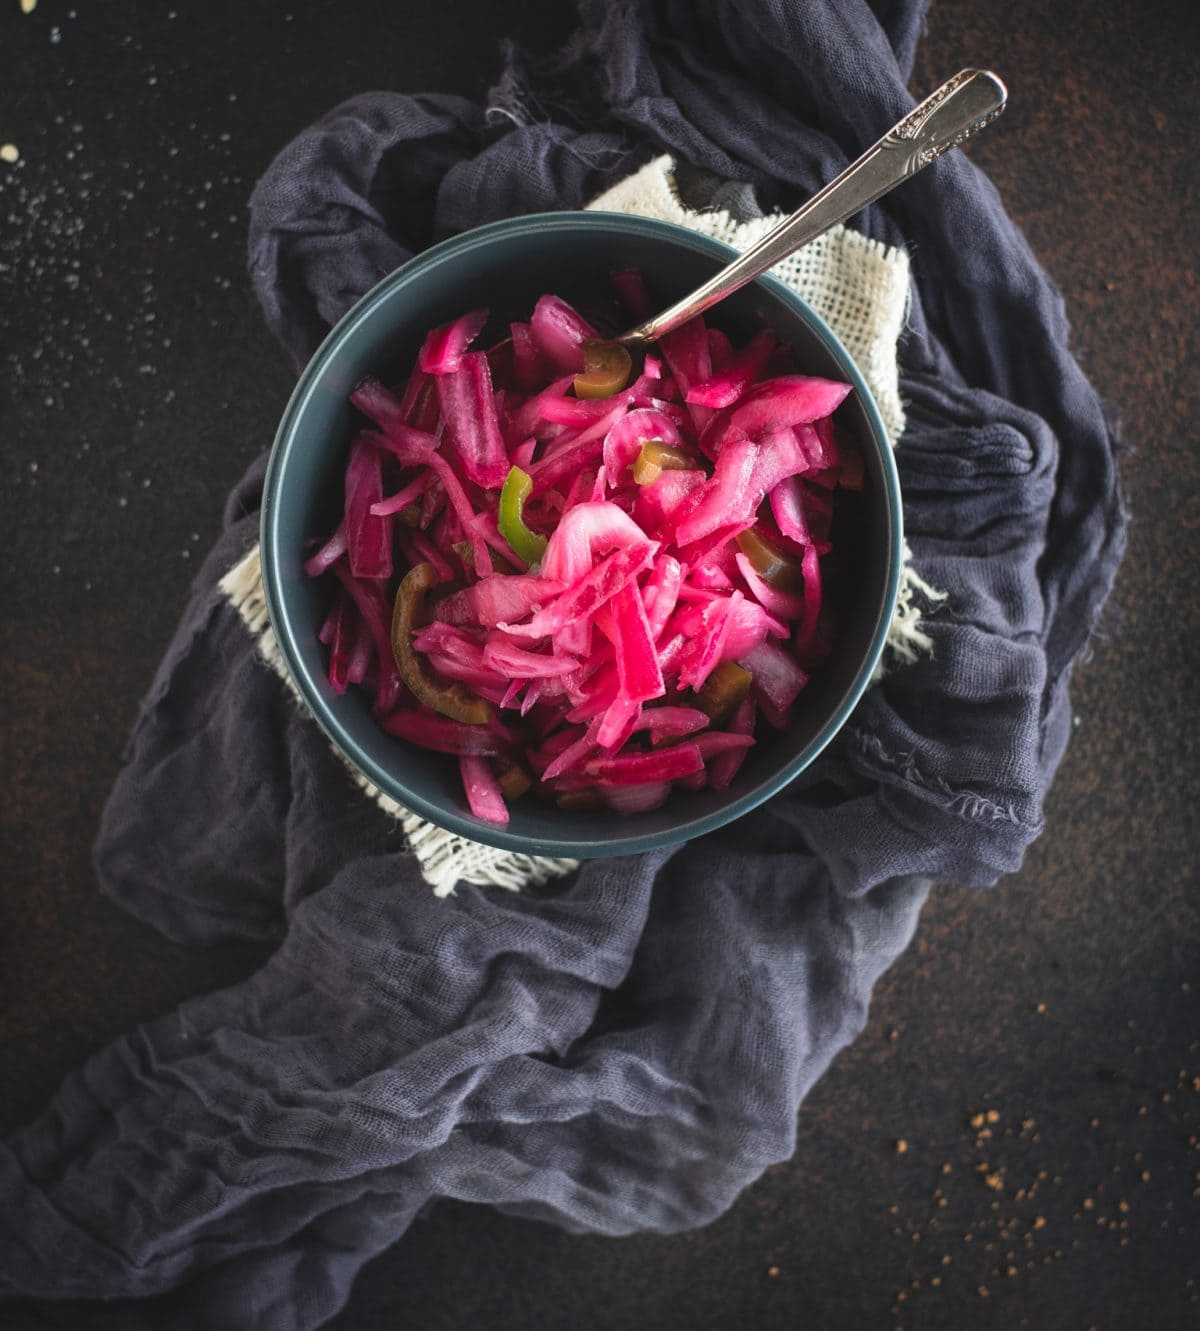 Overhead picture of bowl of pickled red onions on dark background